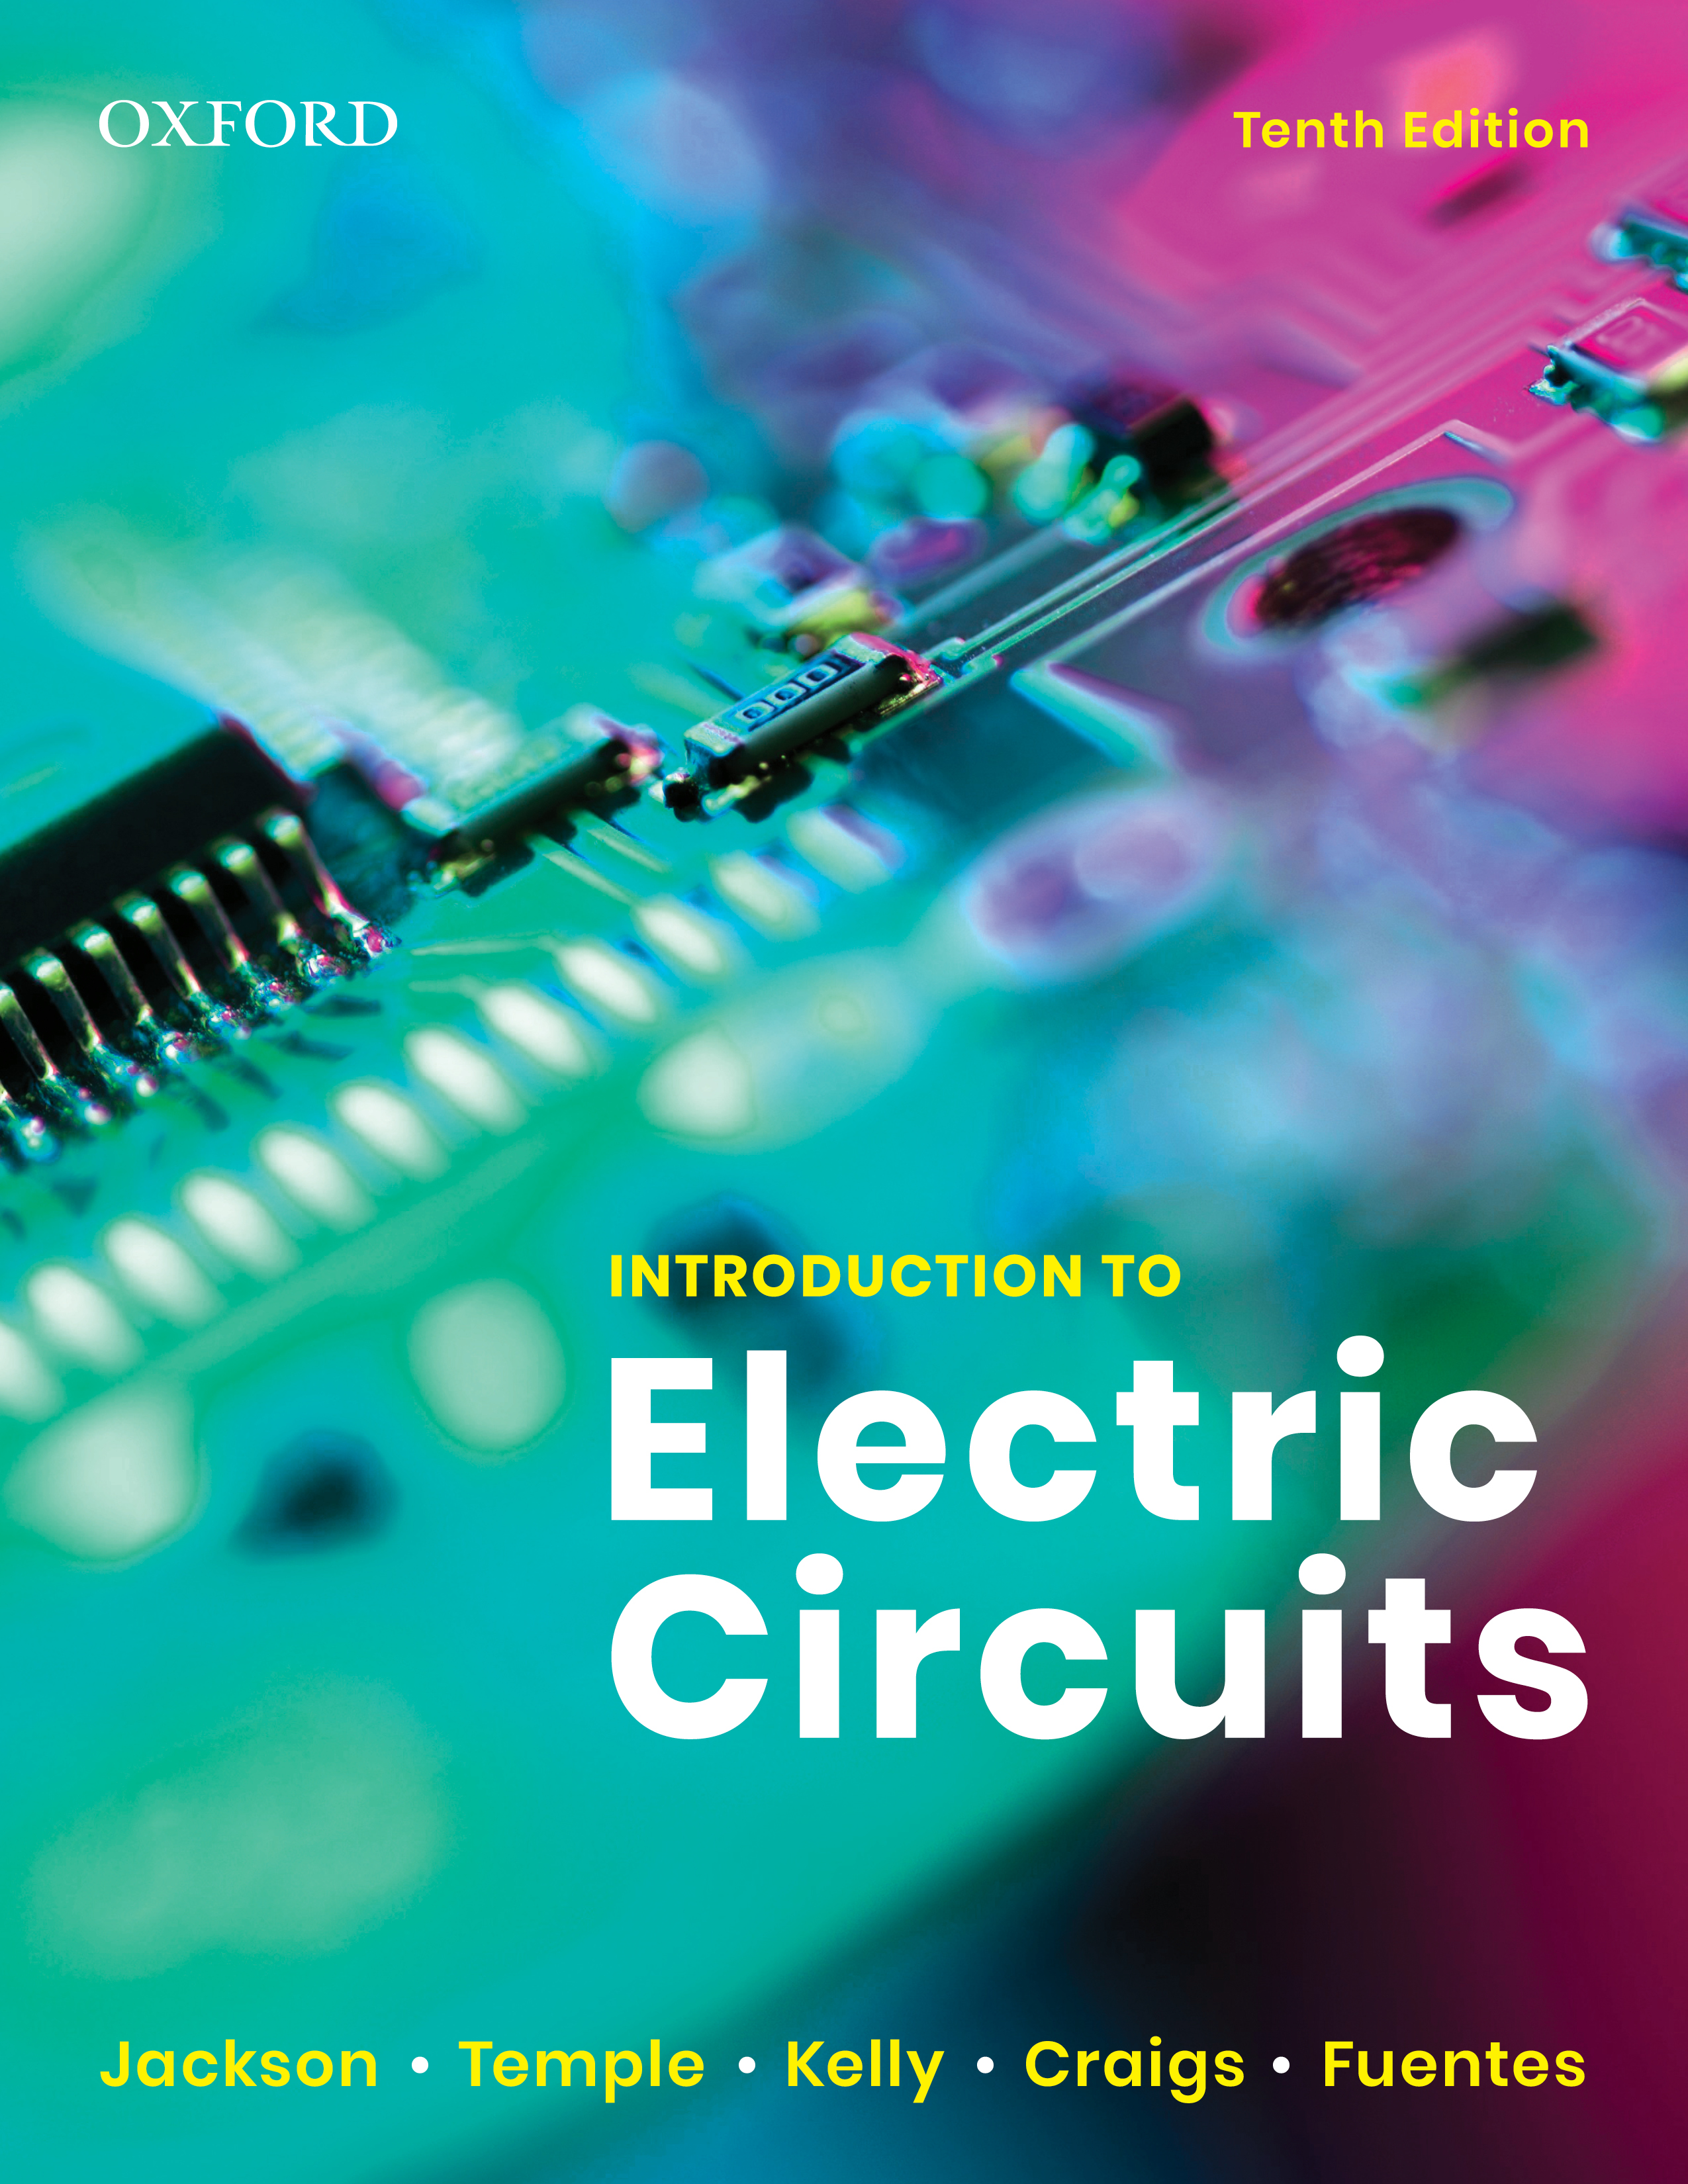 Introduction to Electric Circuits 10e Instructor Resources